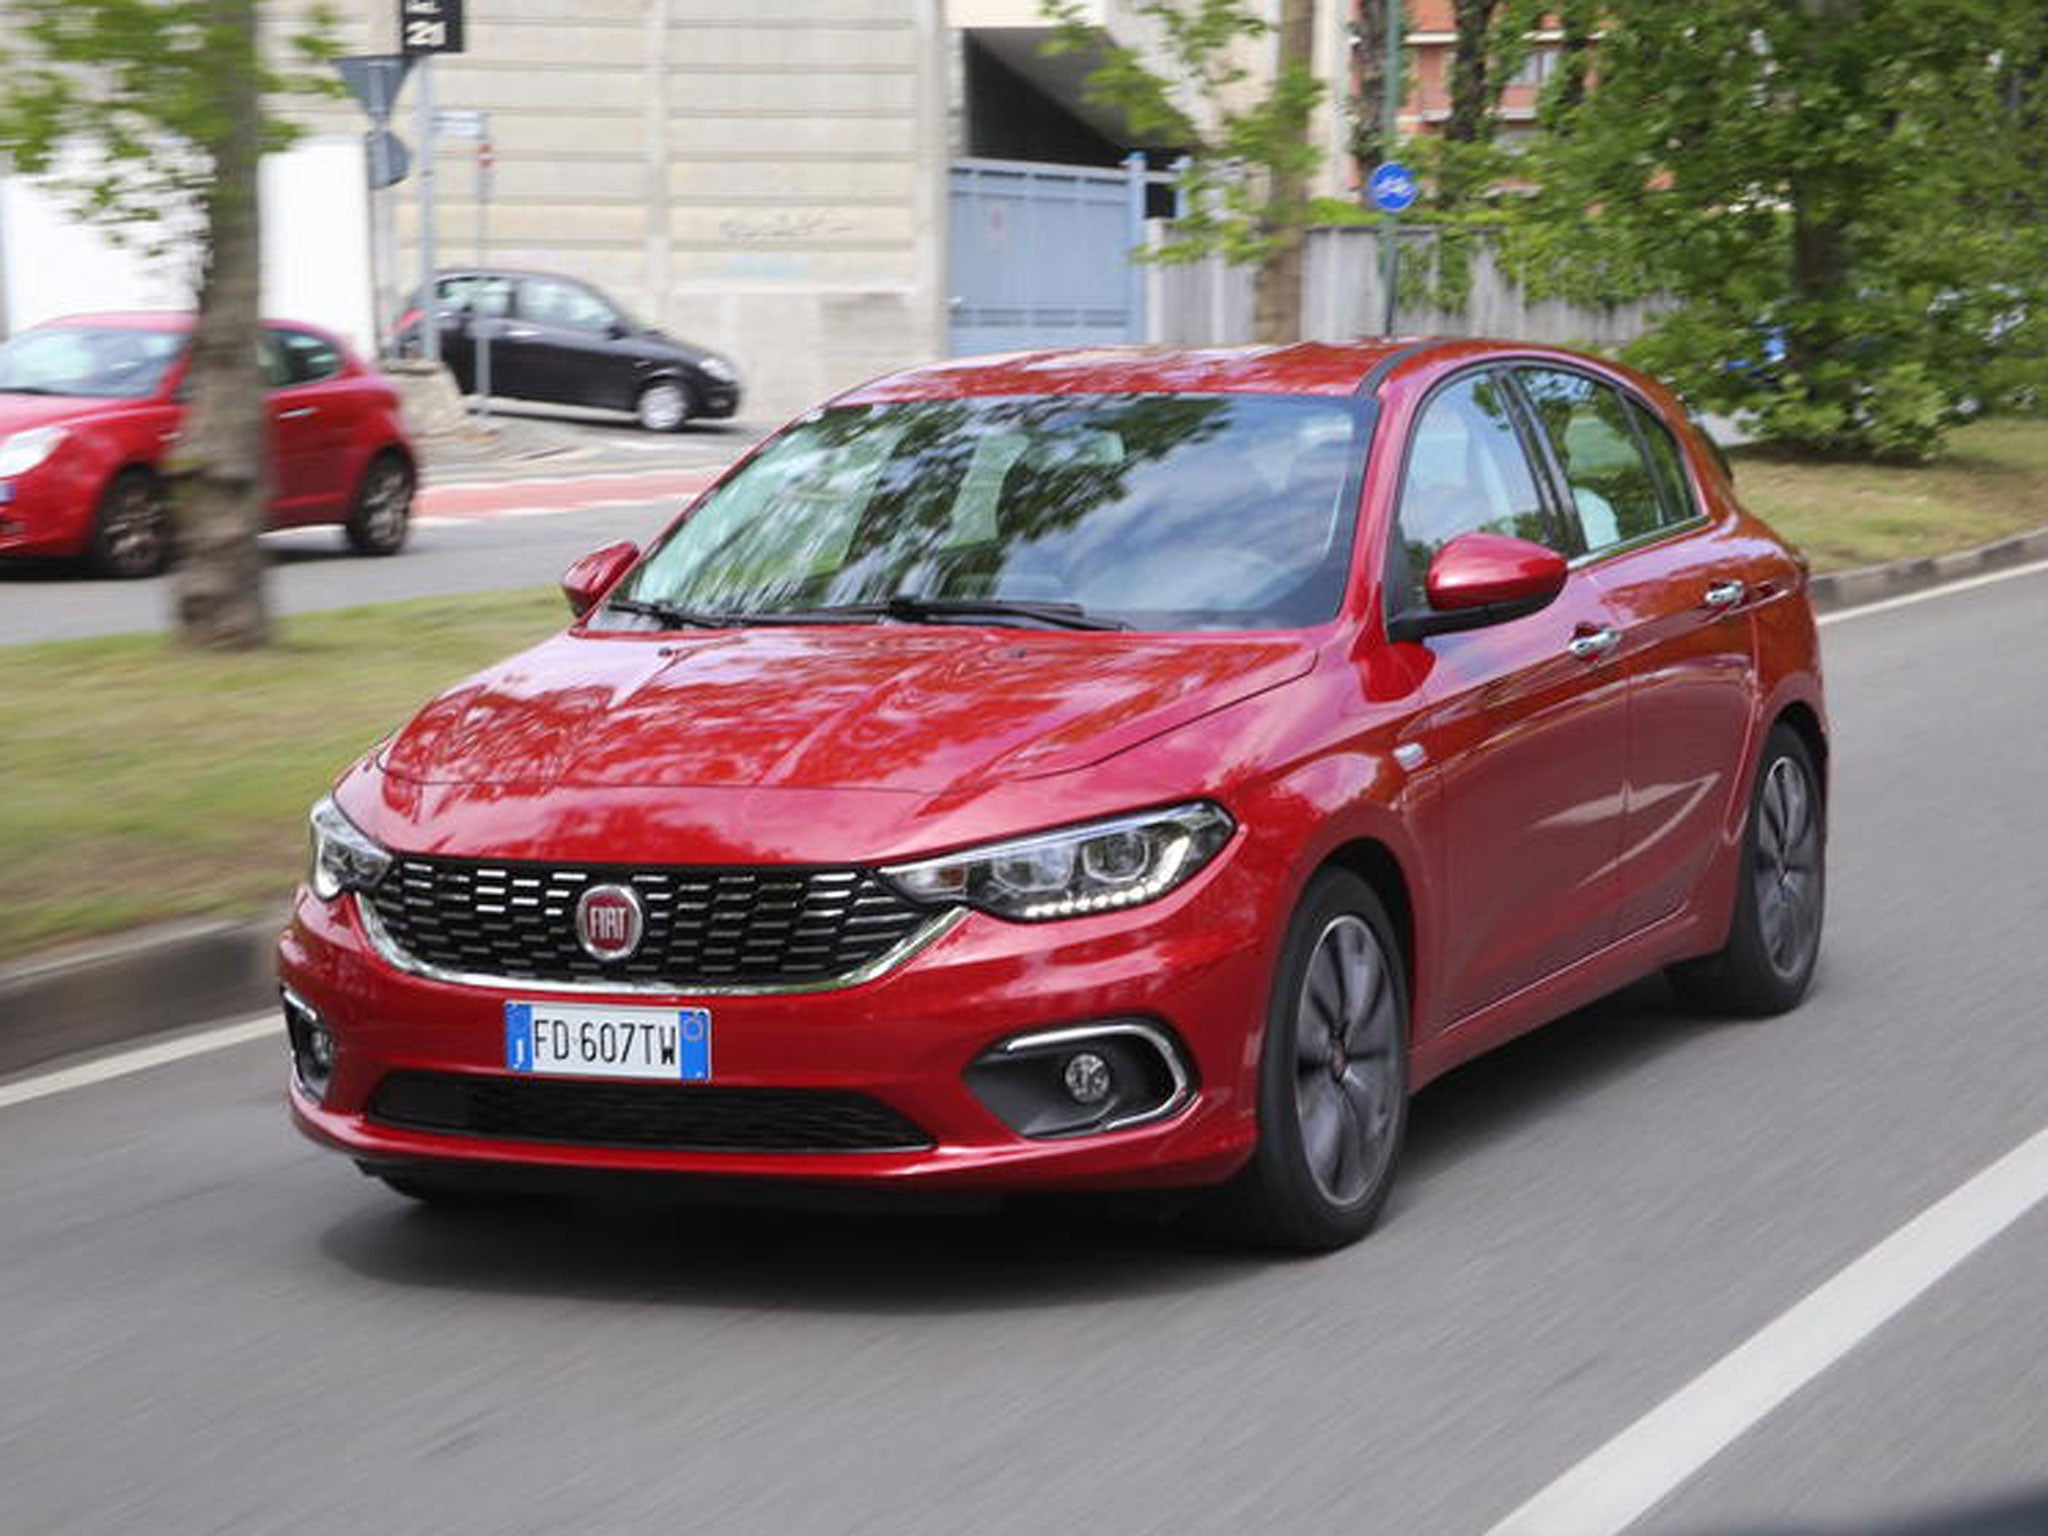 fiat tipo 1 4 t jet lounge car review new hatch promises value and practicality the independent. Black Bedroom Furniture Sets. Home Design Ideas